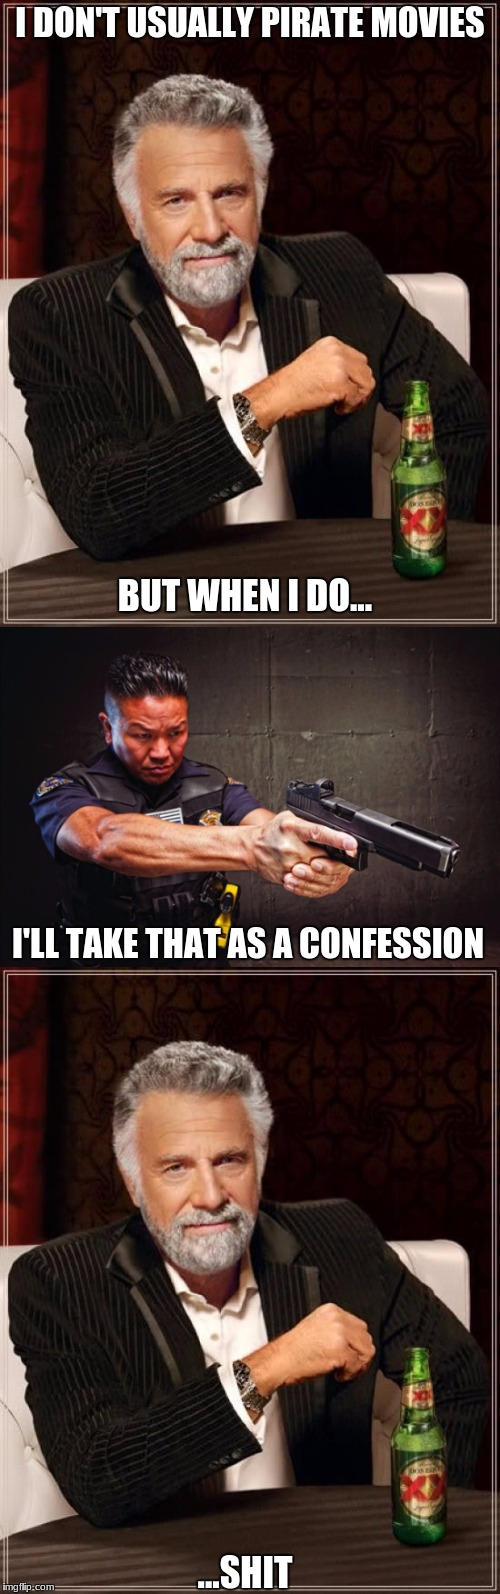 The most interesting man in the world | I DON'T USUALLY PIRATE MOVIES BUT WHEN I DO... I'LL TAKE THAT AS A CONFESSION ...SHIT | image tagged in the most interesting man in the world,cop | made w/ Imgflip meme maker